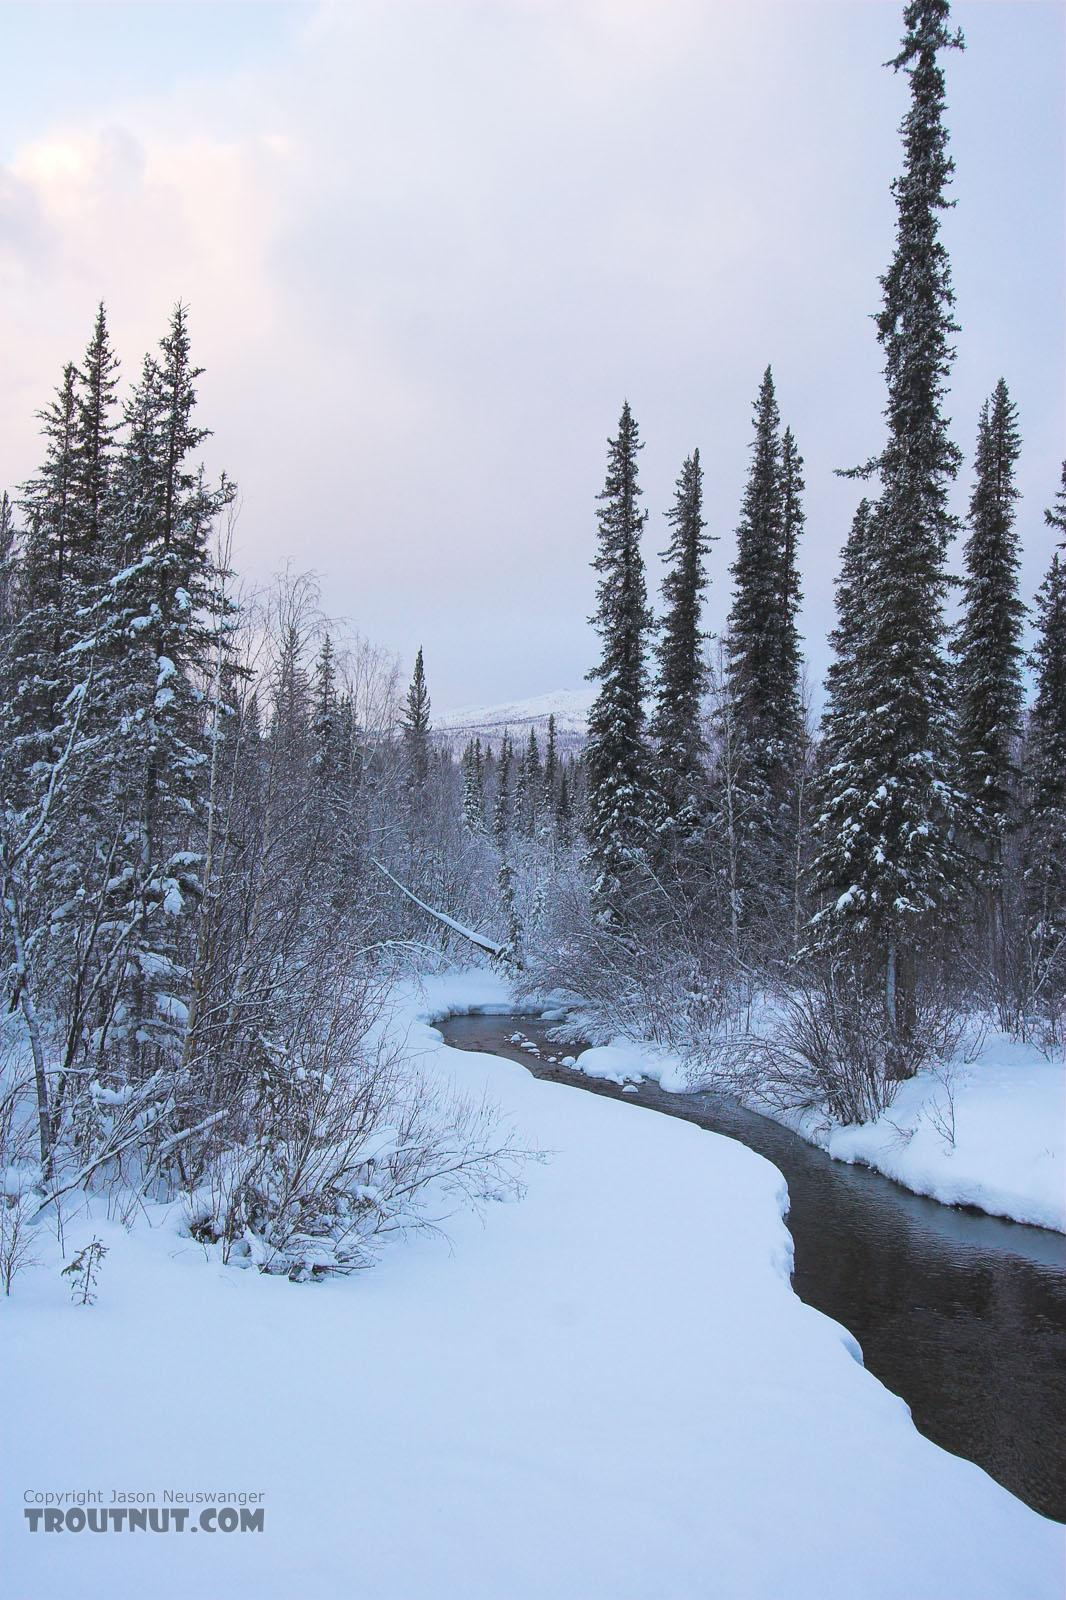 This is a small, photogenic tributary of the main river I was photographing in Alaska. From the Chena River tributary in Alaska.